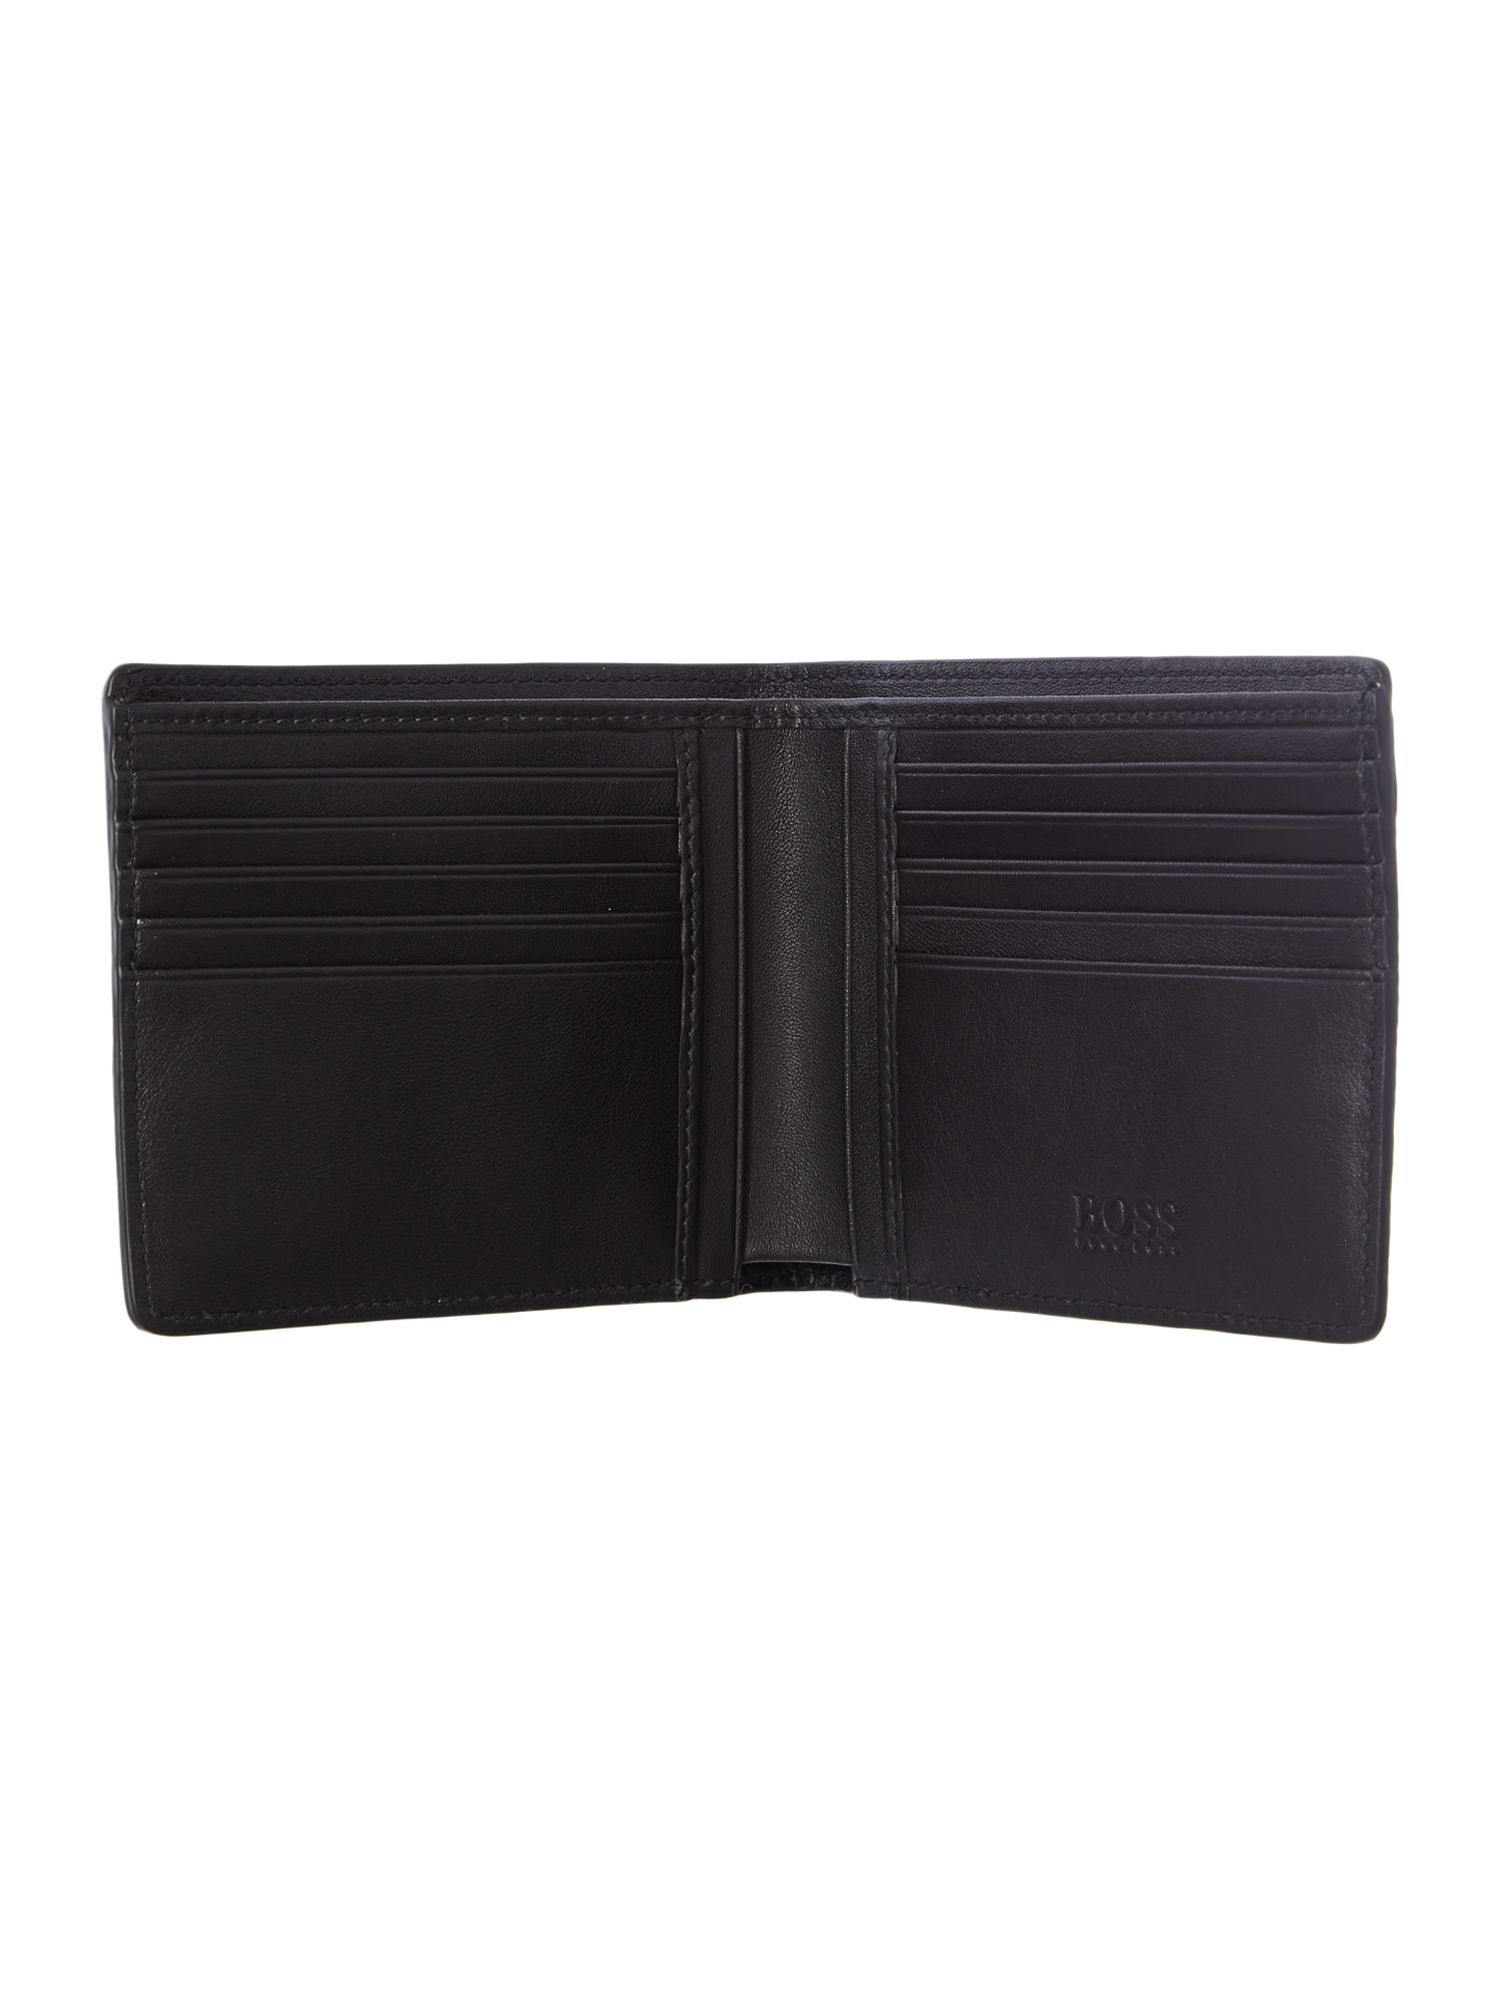 Dimy textured billfold wallet